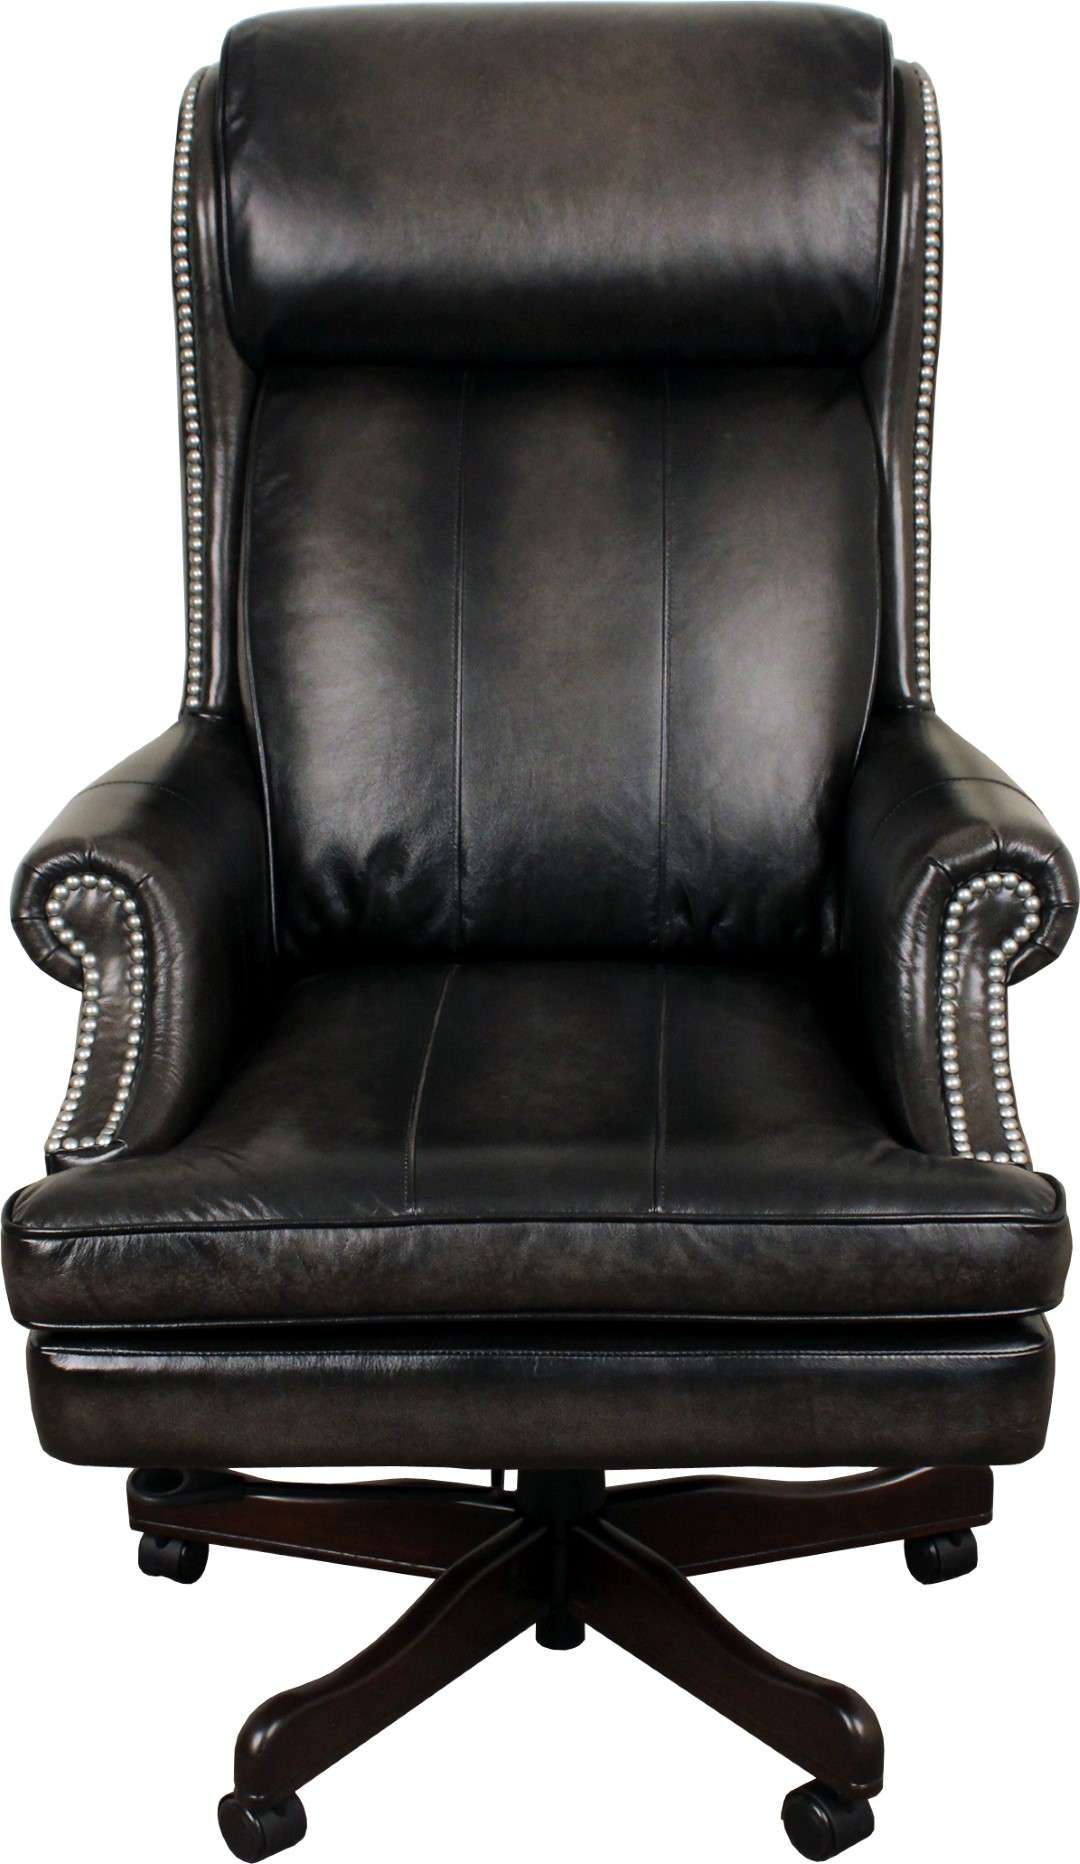 Prestige Smoke Leather Desk Chair with Black Base